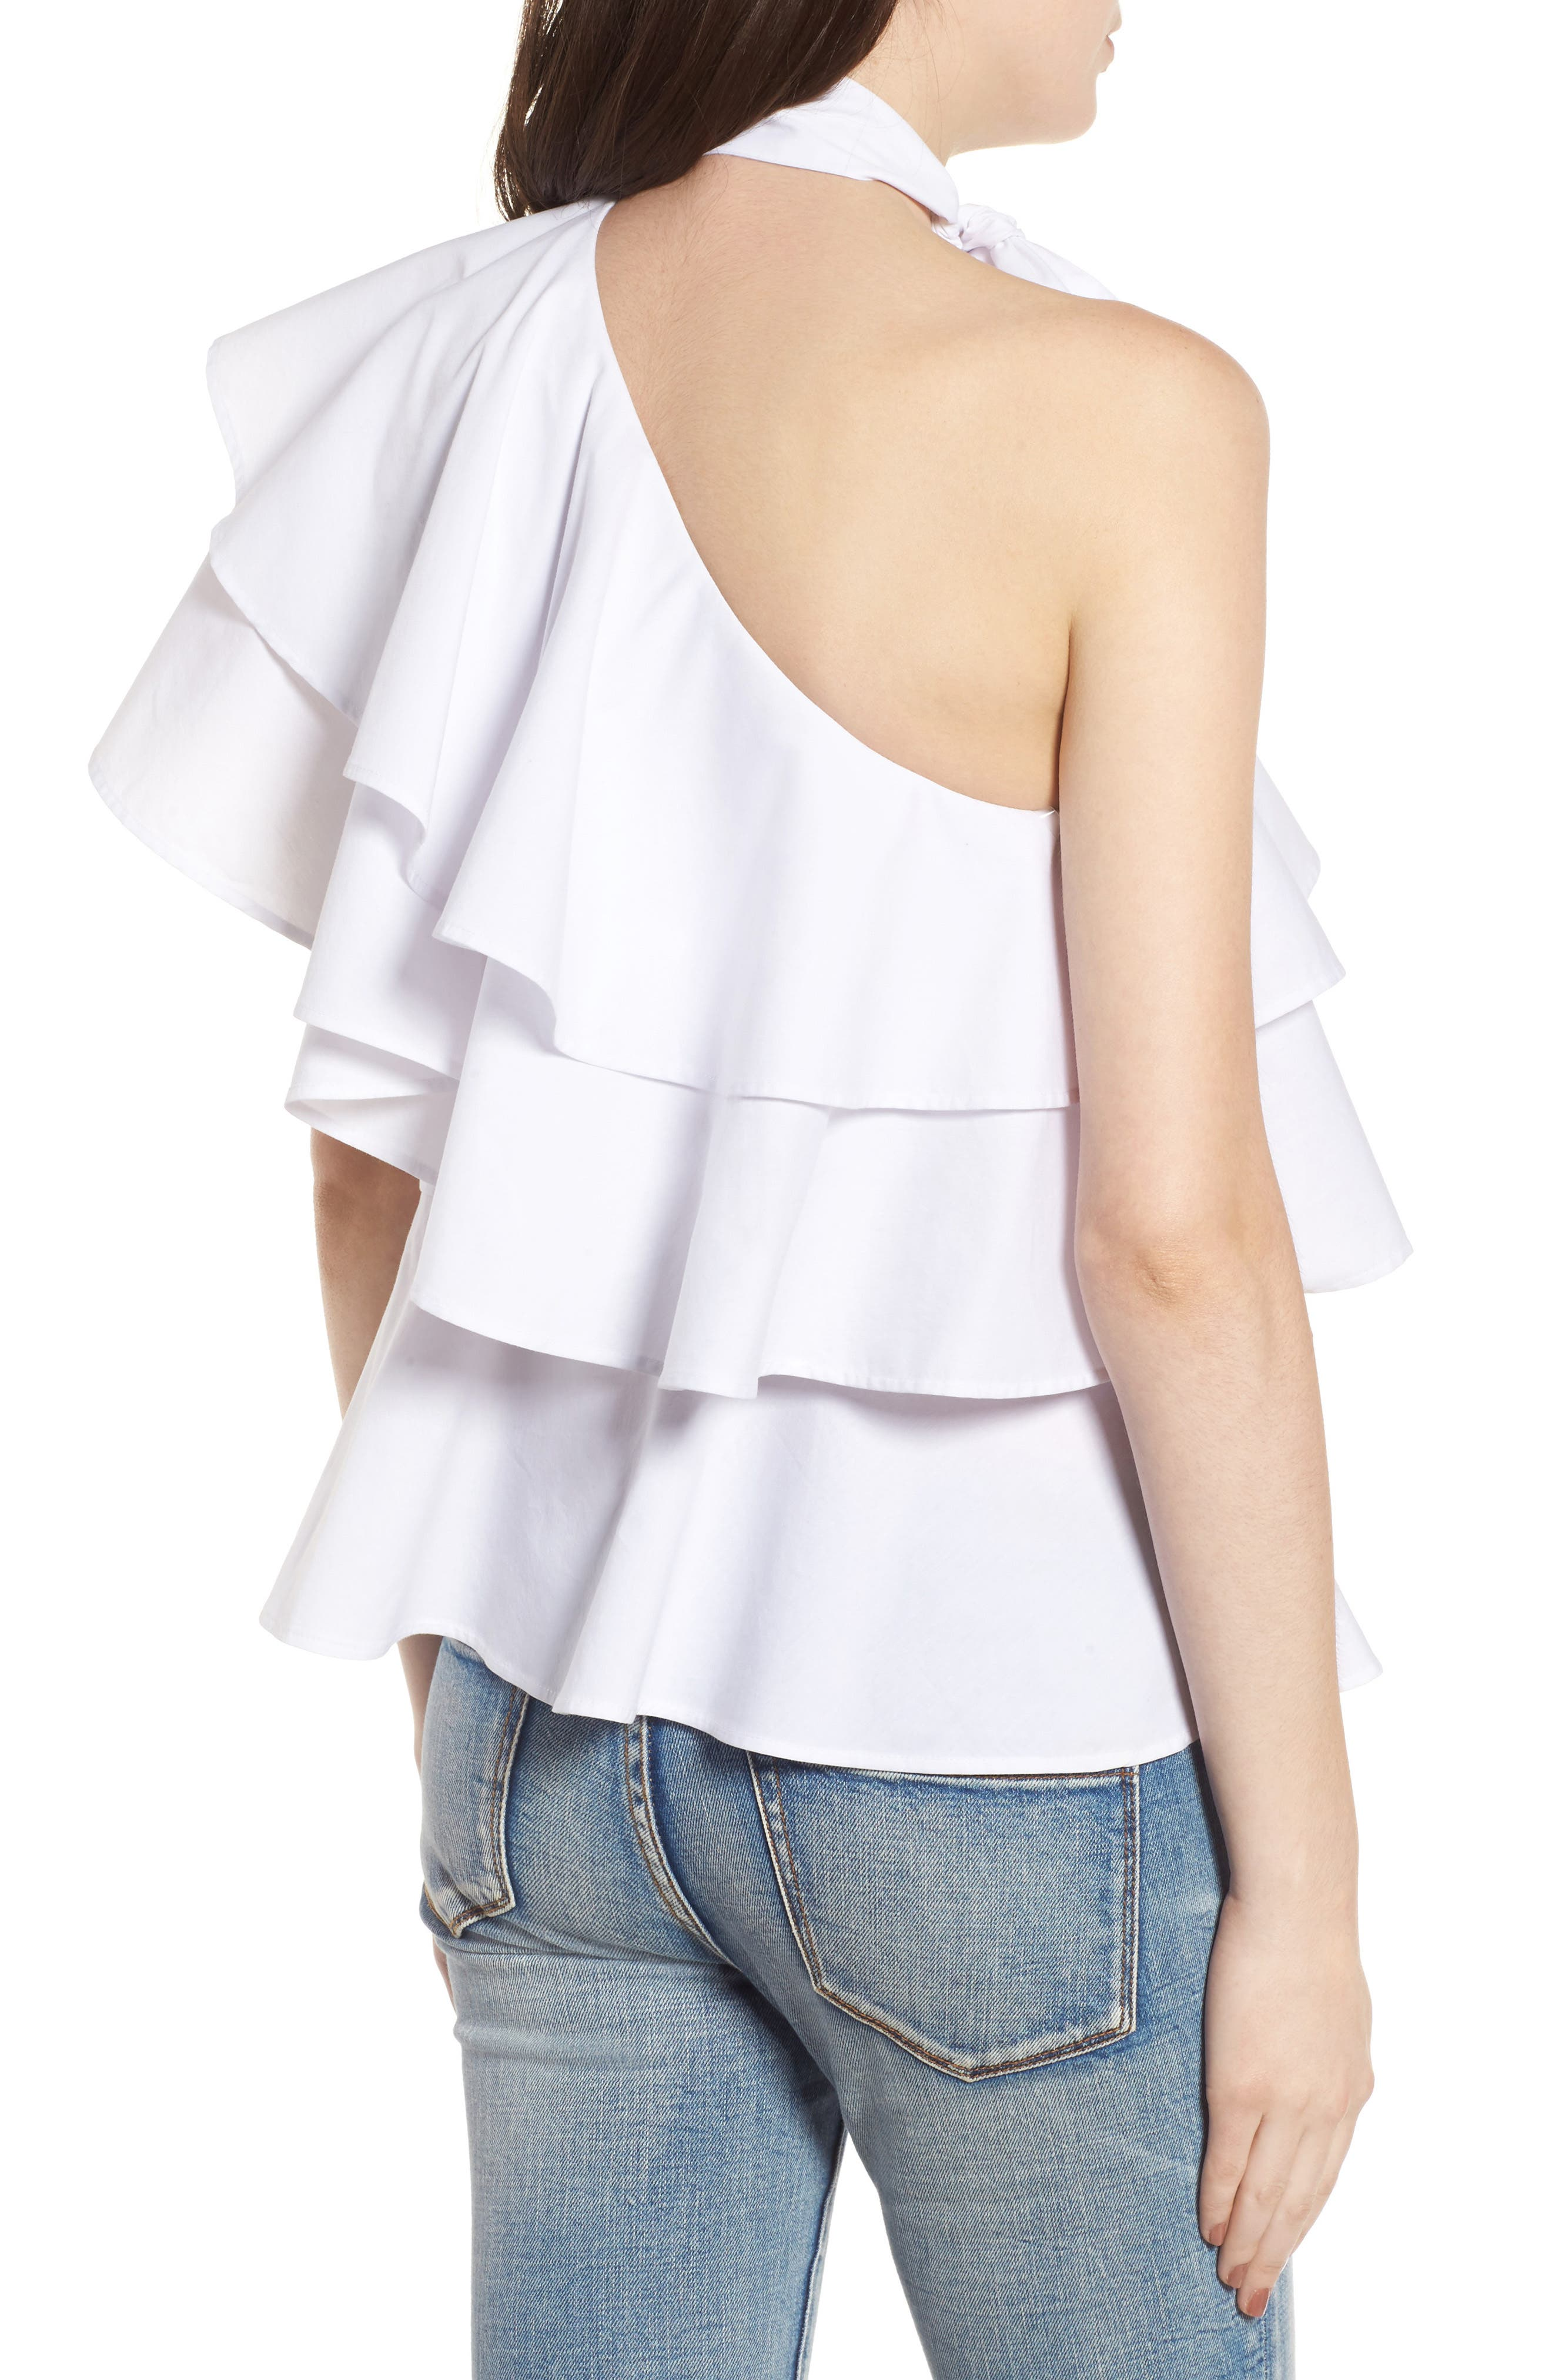 LEITH, One-Shoulder Ruffle Top, Alternate thumbnail 2, color, 100